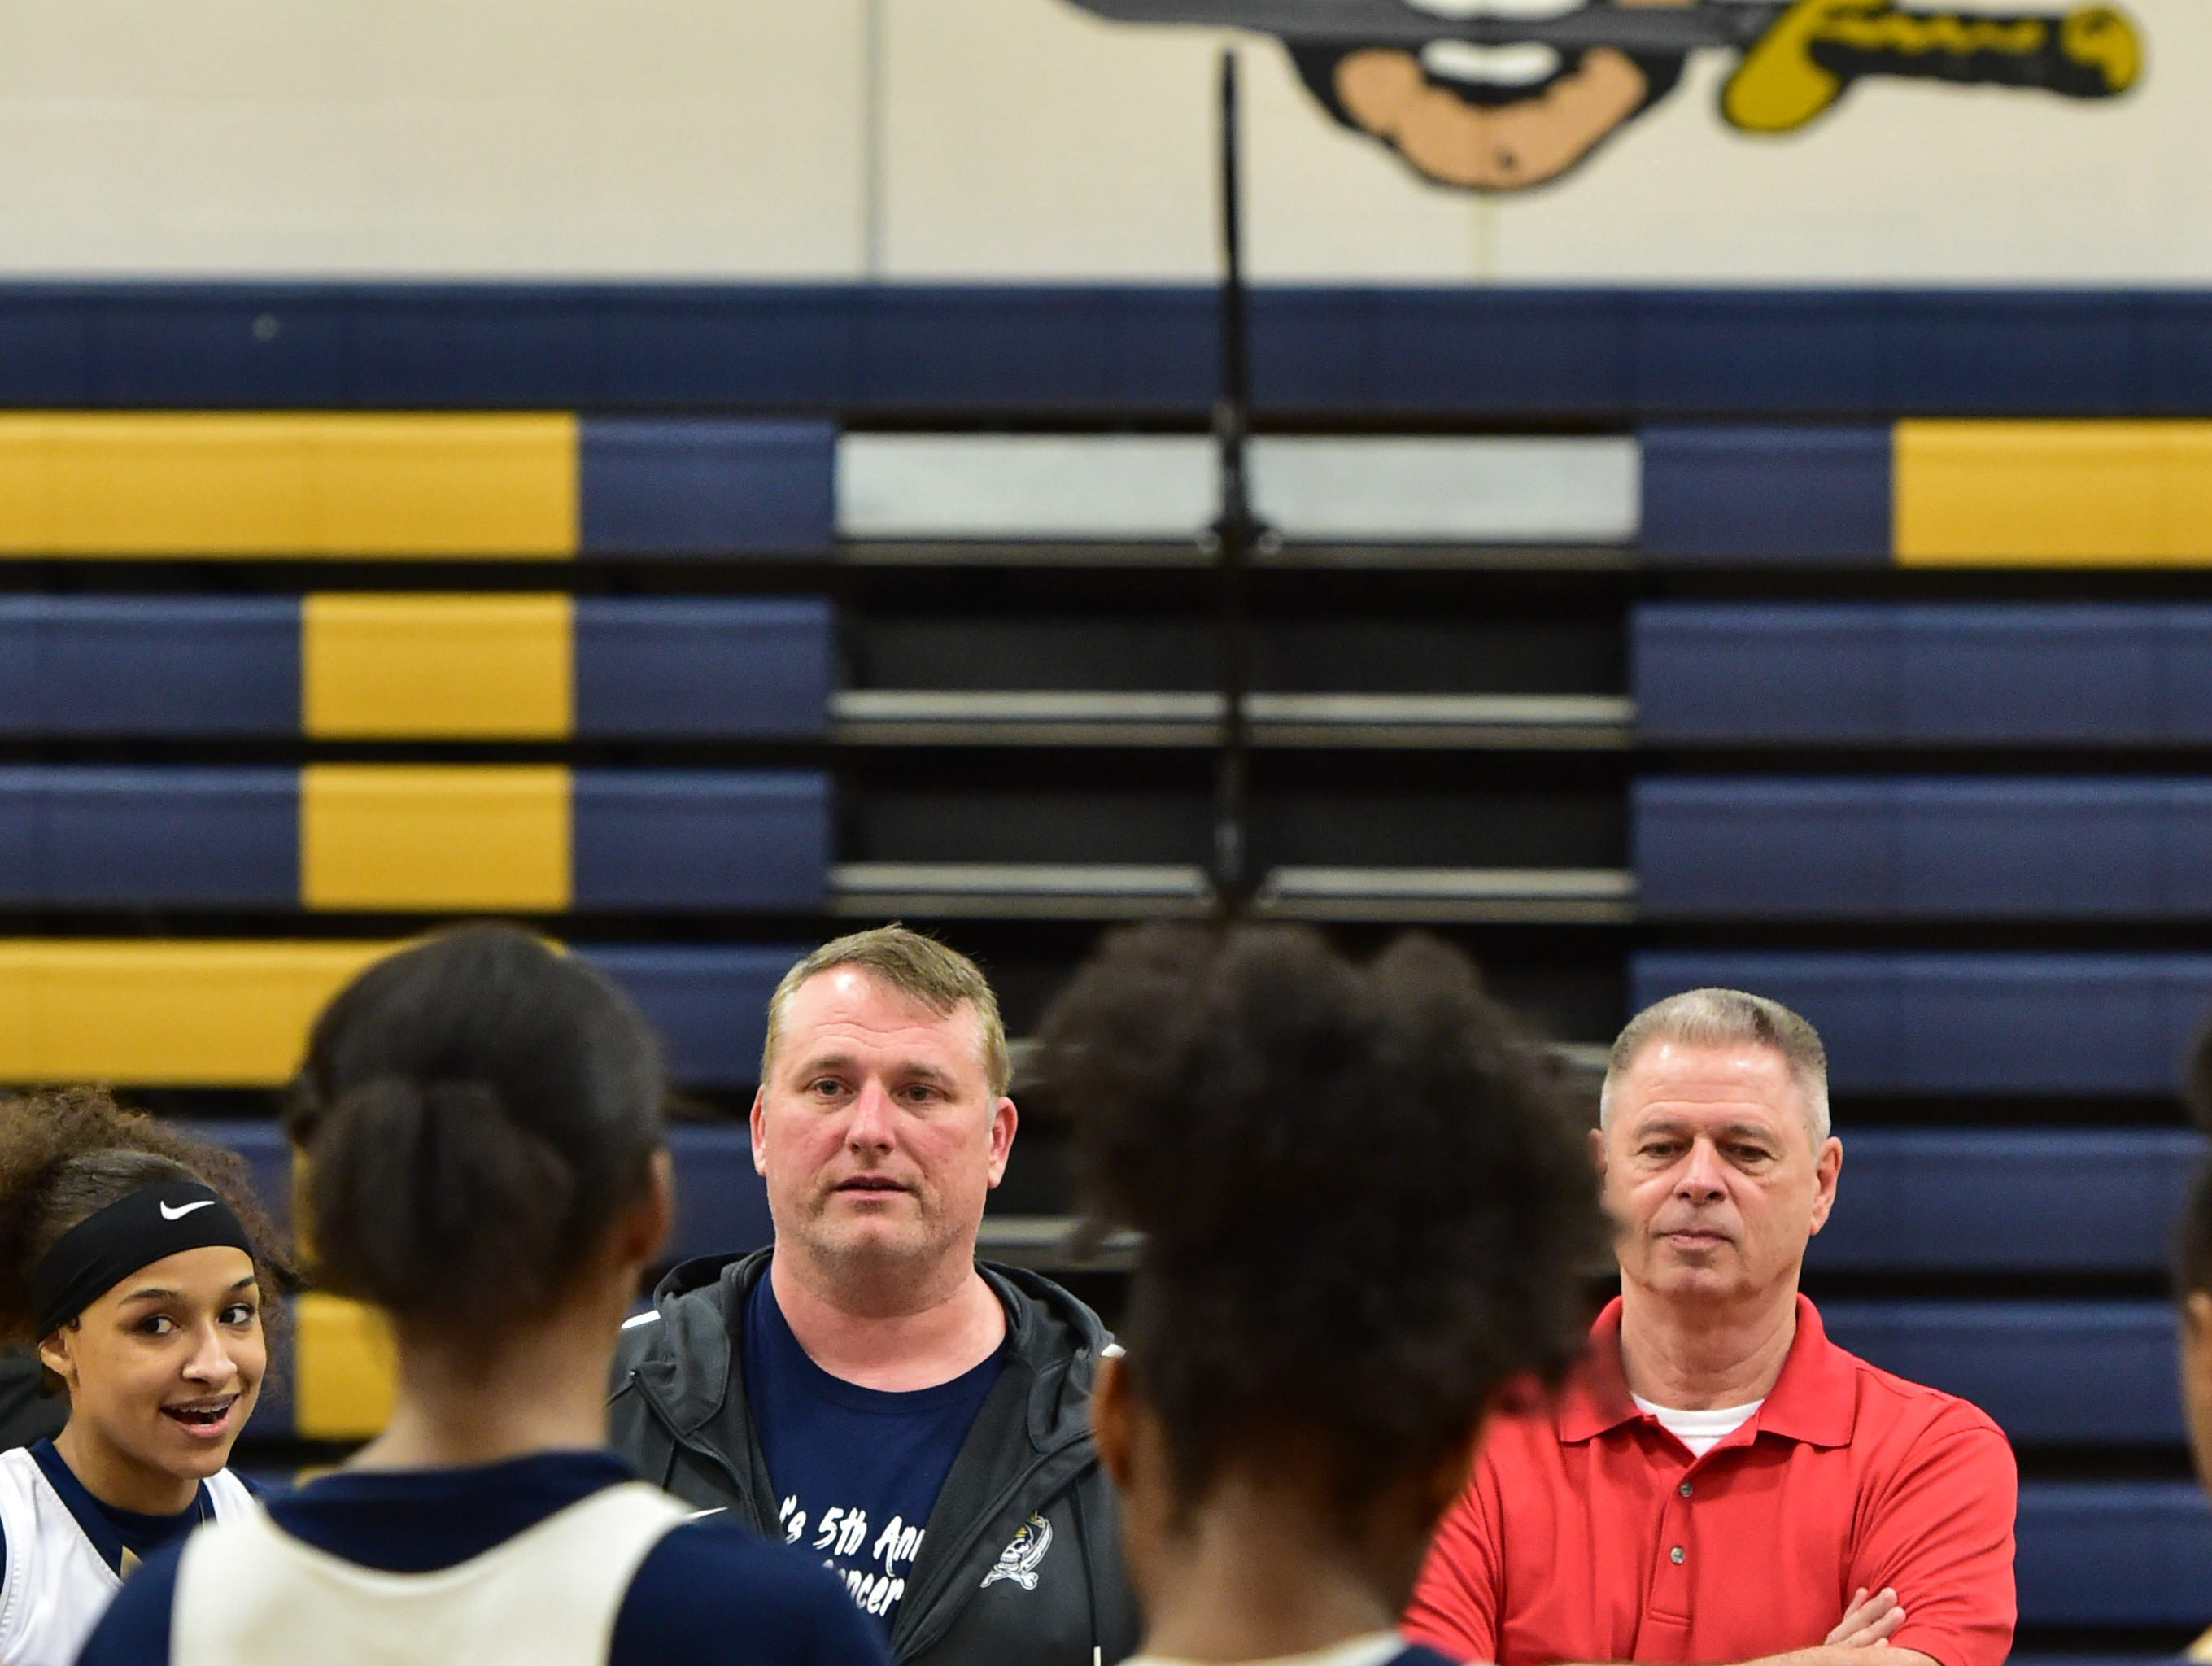 Pearl High School girls basketball acting head coach Jason Kennedy (center) and acting assistant coach Wayne Fortenberry (right)  coach the Pearl team while Kennedy's wife and head coach Lacey Kennedy is deployed overseas with the Army reserve. Thursday, Feb. 21, 2019 in Pearl, Miss.